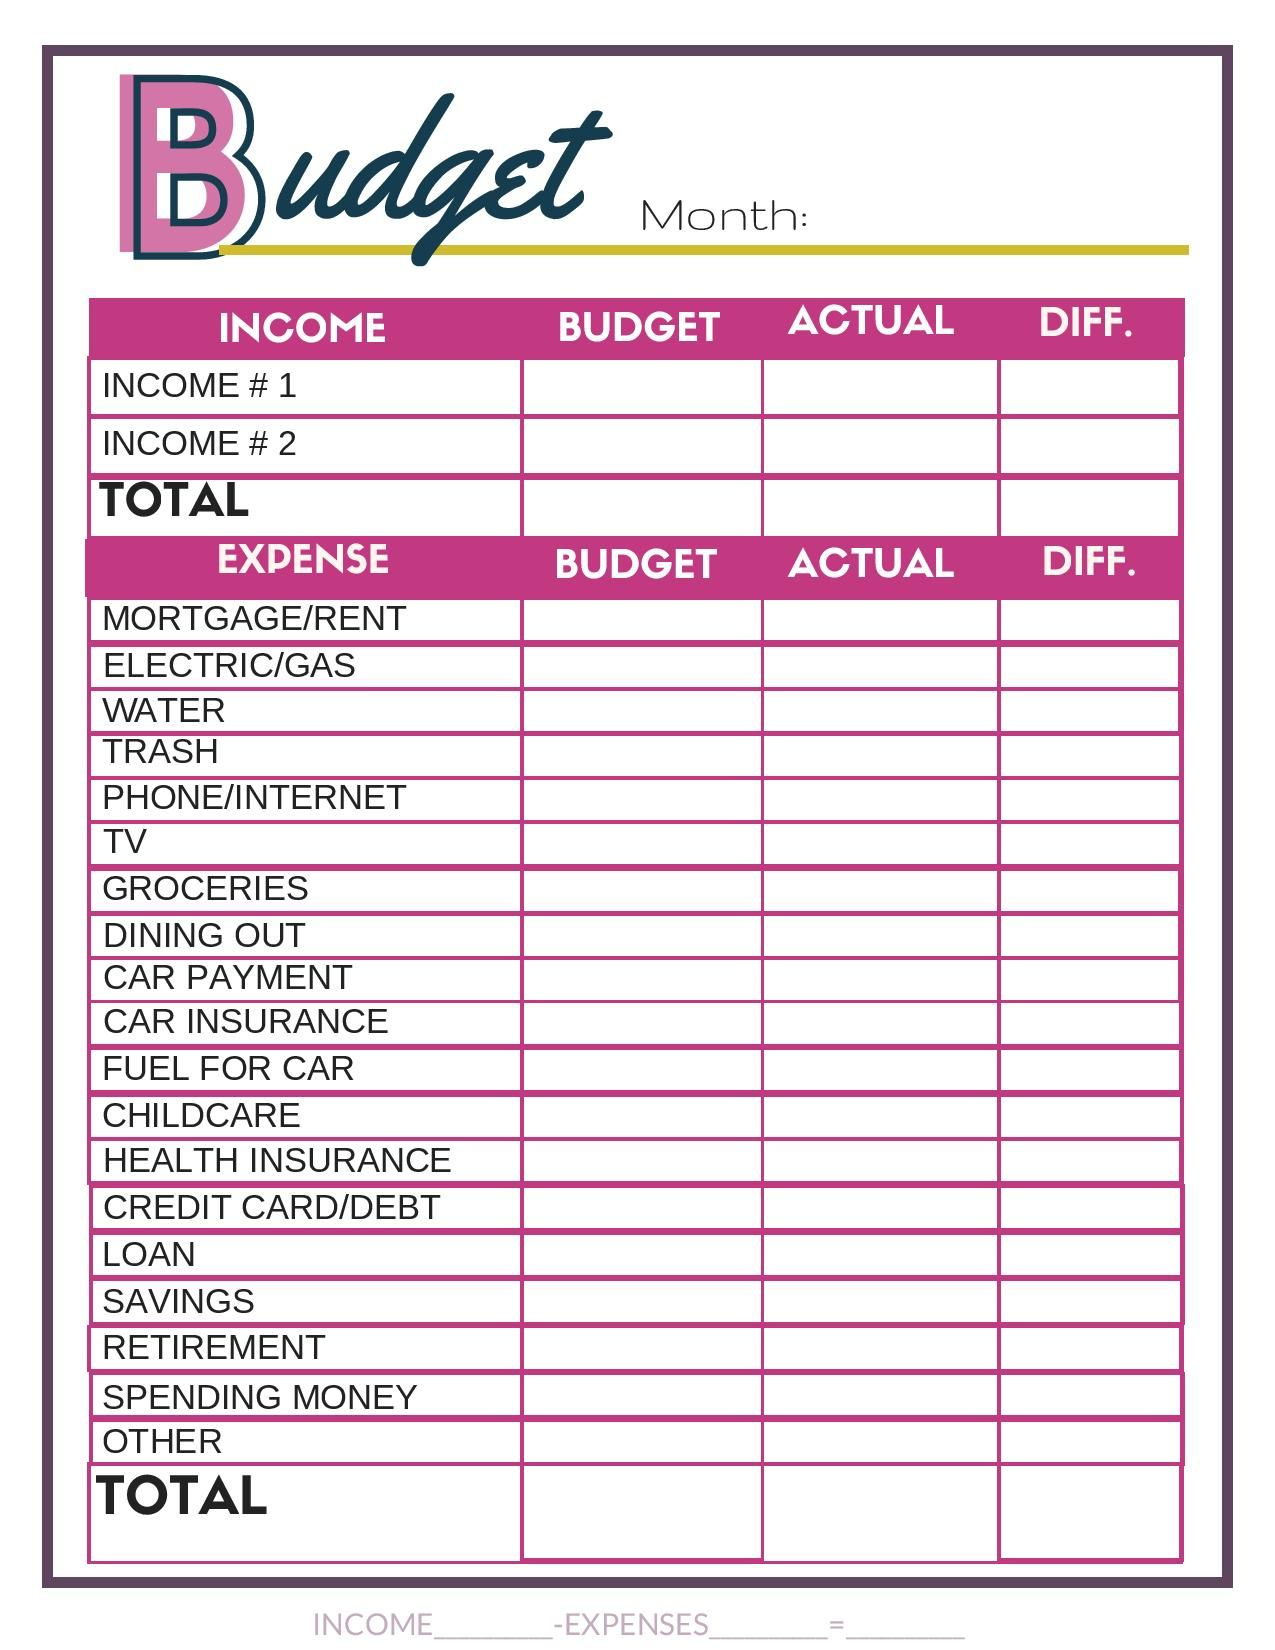 Free Pink Budget Worksheet Budget Budgetbinder Printable Budgeting Worksheets Budgeting Printable Budget Worksheet